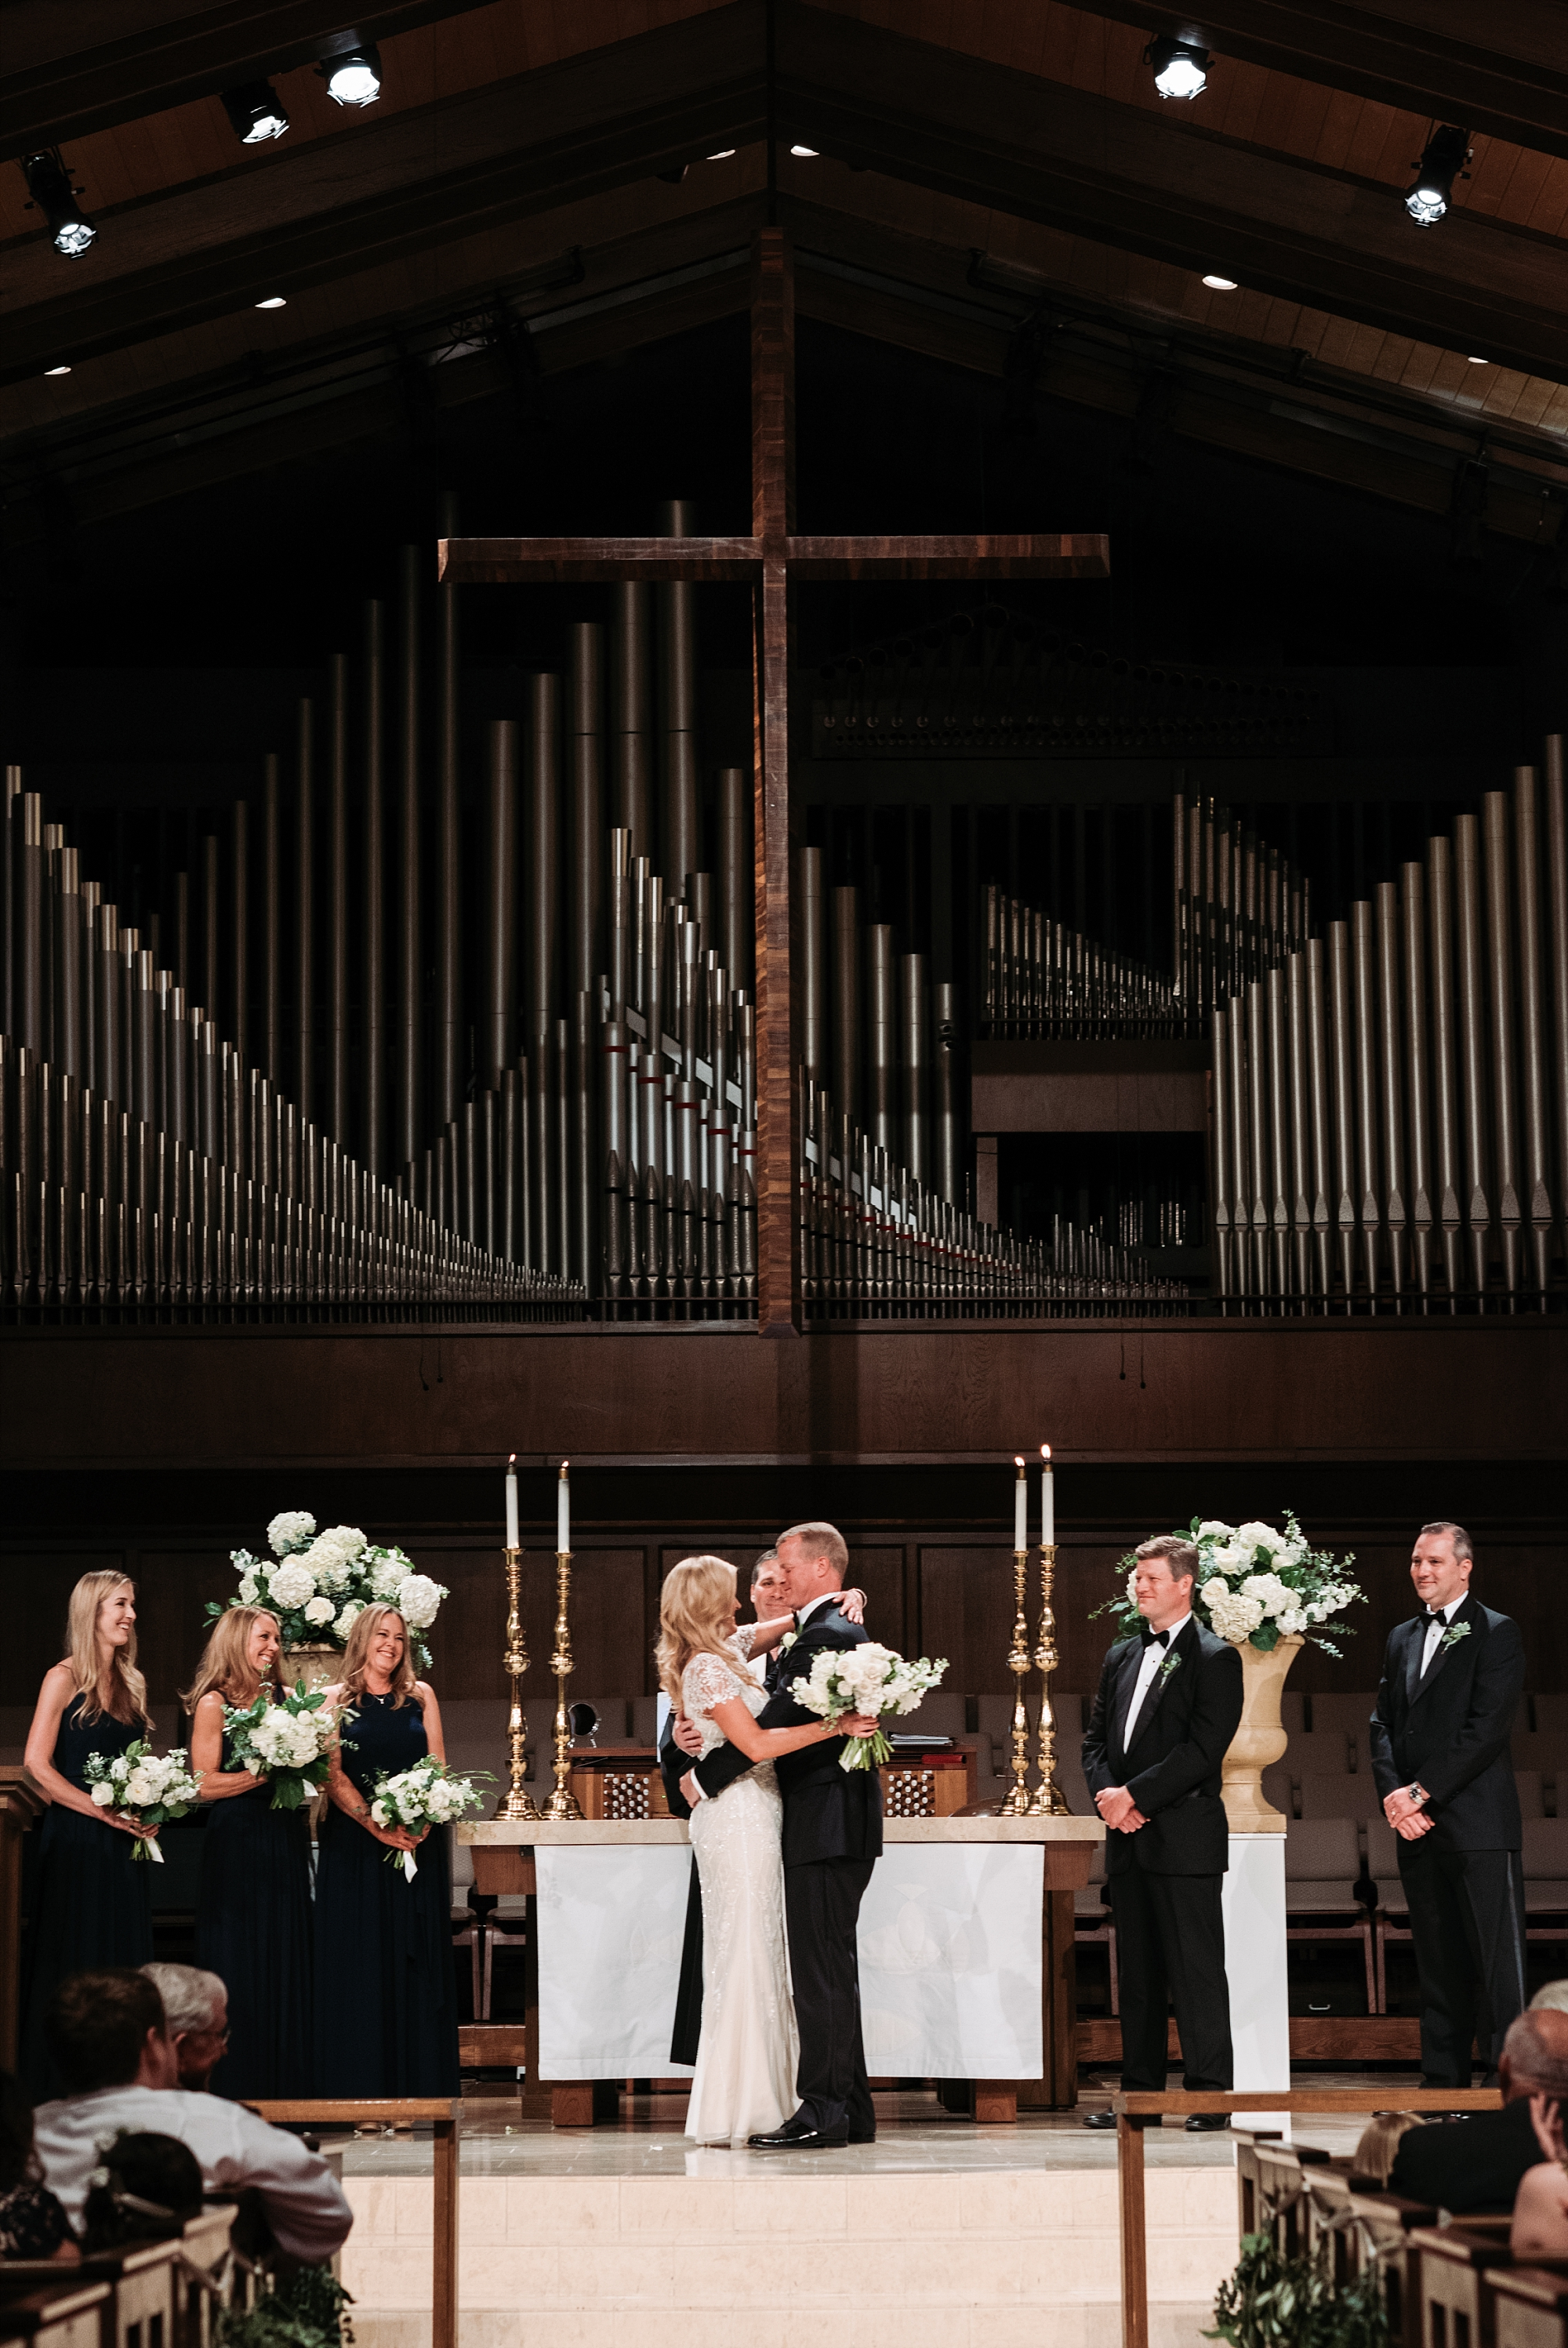 Chapel organ wedding bride groom photography